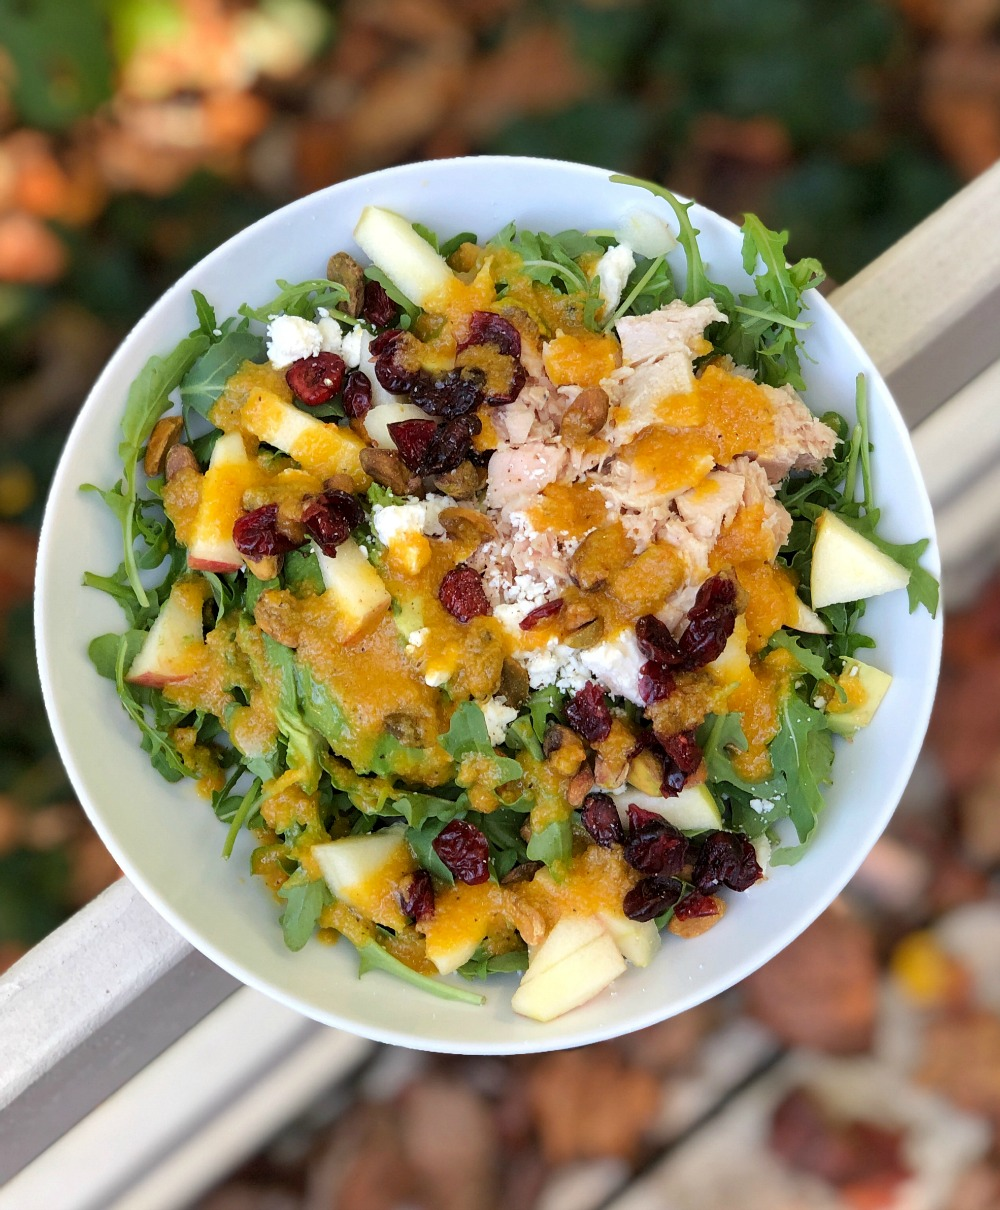 salad topped with tuna